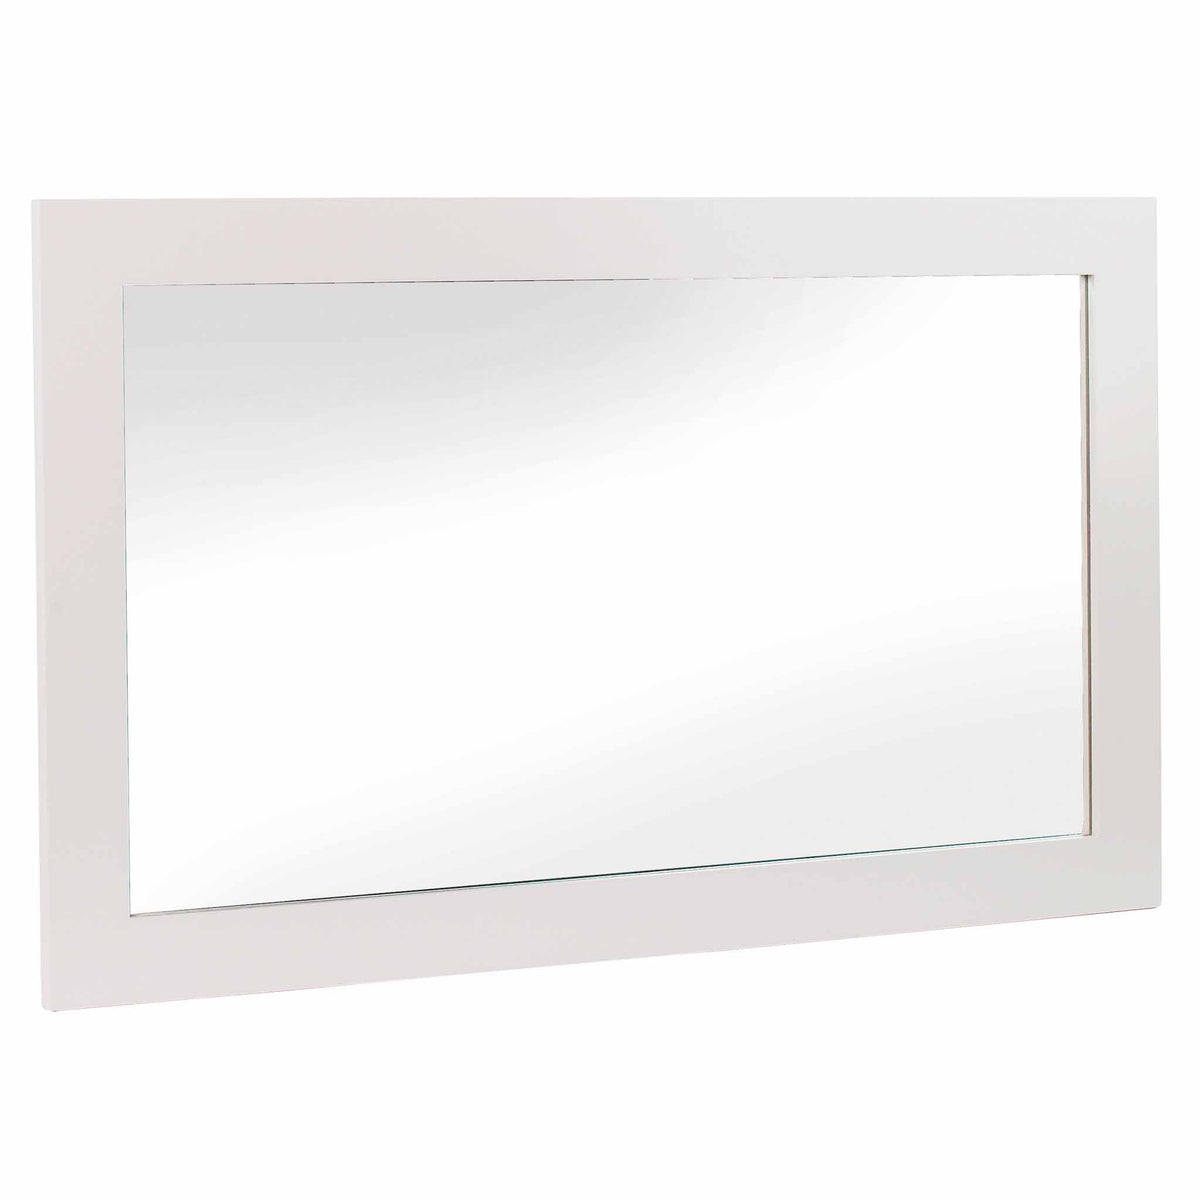 Melrose Cotton White Large Wall Mounted Mirror from Roseland Furniture